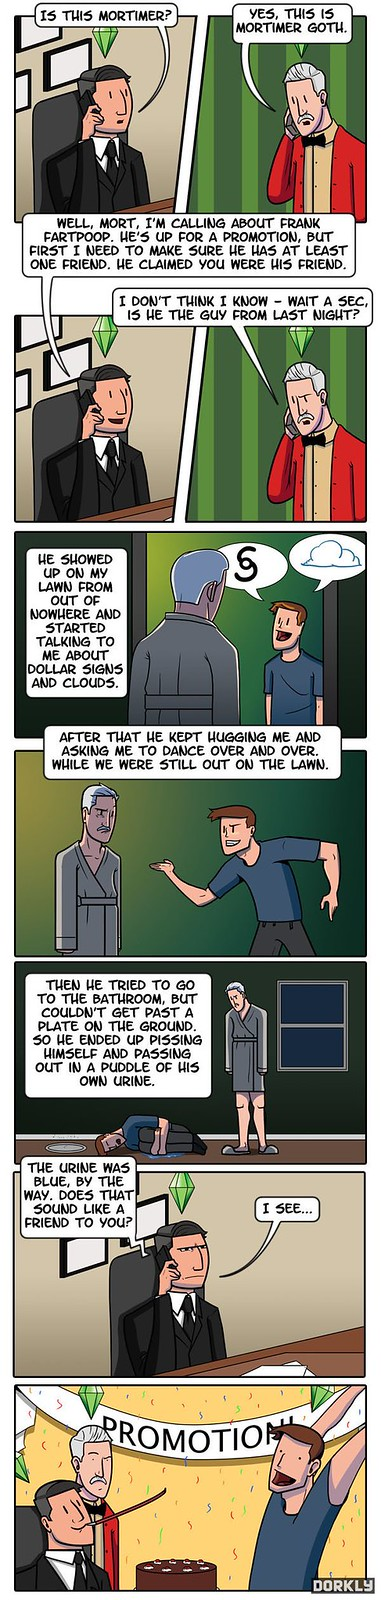 Dorkly/College Humor Sims Career Ladder